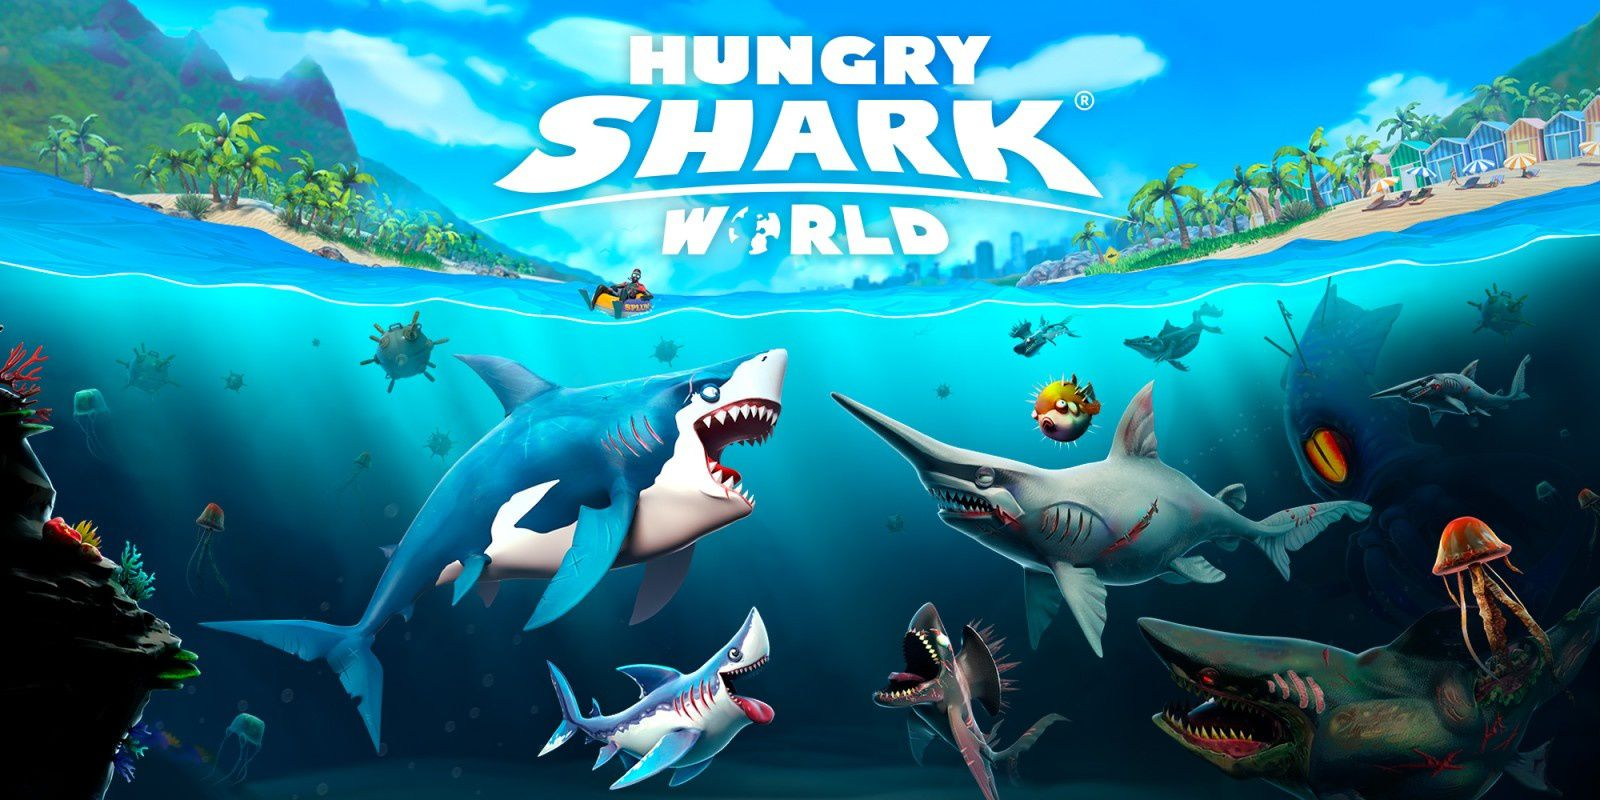 [TEST] HUNGRY SHARK WORLD XBOX ONE X : le Pac-Man - like version requins